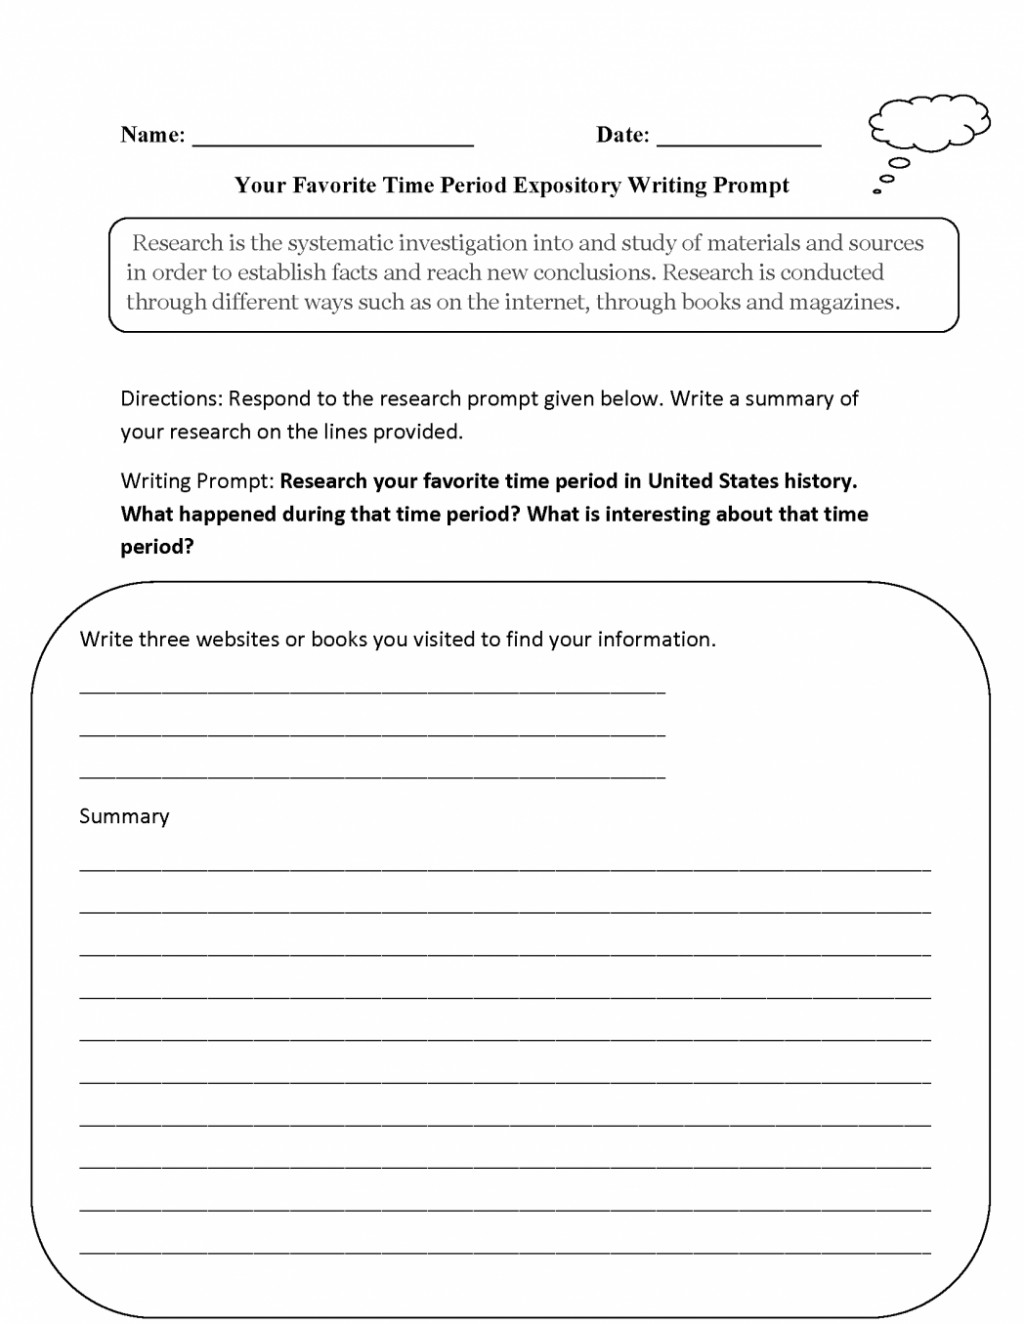 018 Essay Example Good Informative Topics Prompts Favorite Time Period Expository Writing P To Write An On The Topic Of Immigration Remarkable For High School 4th Grade Large